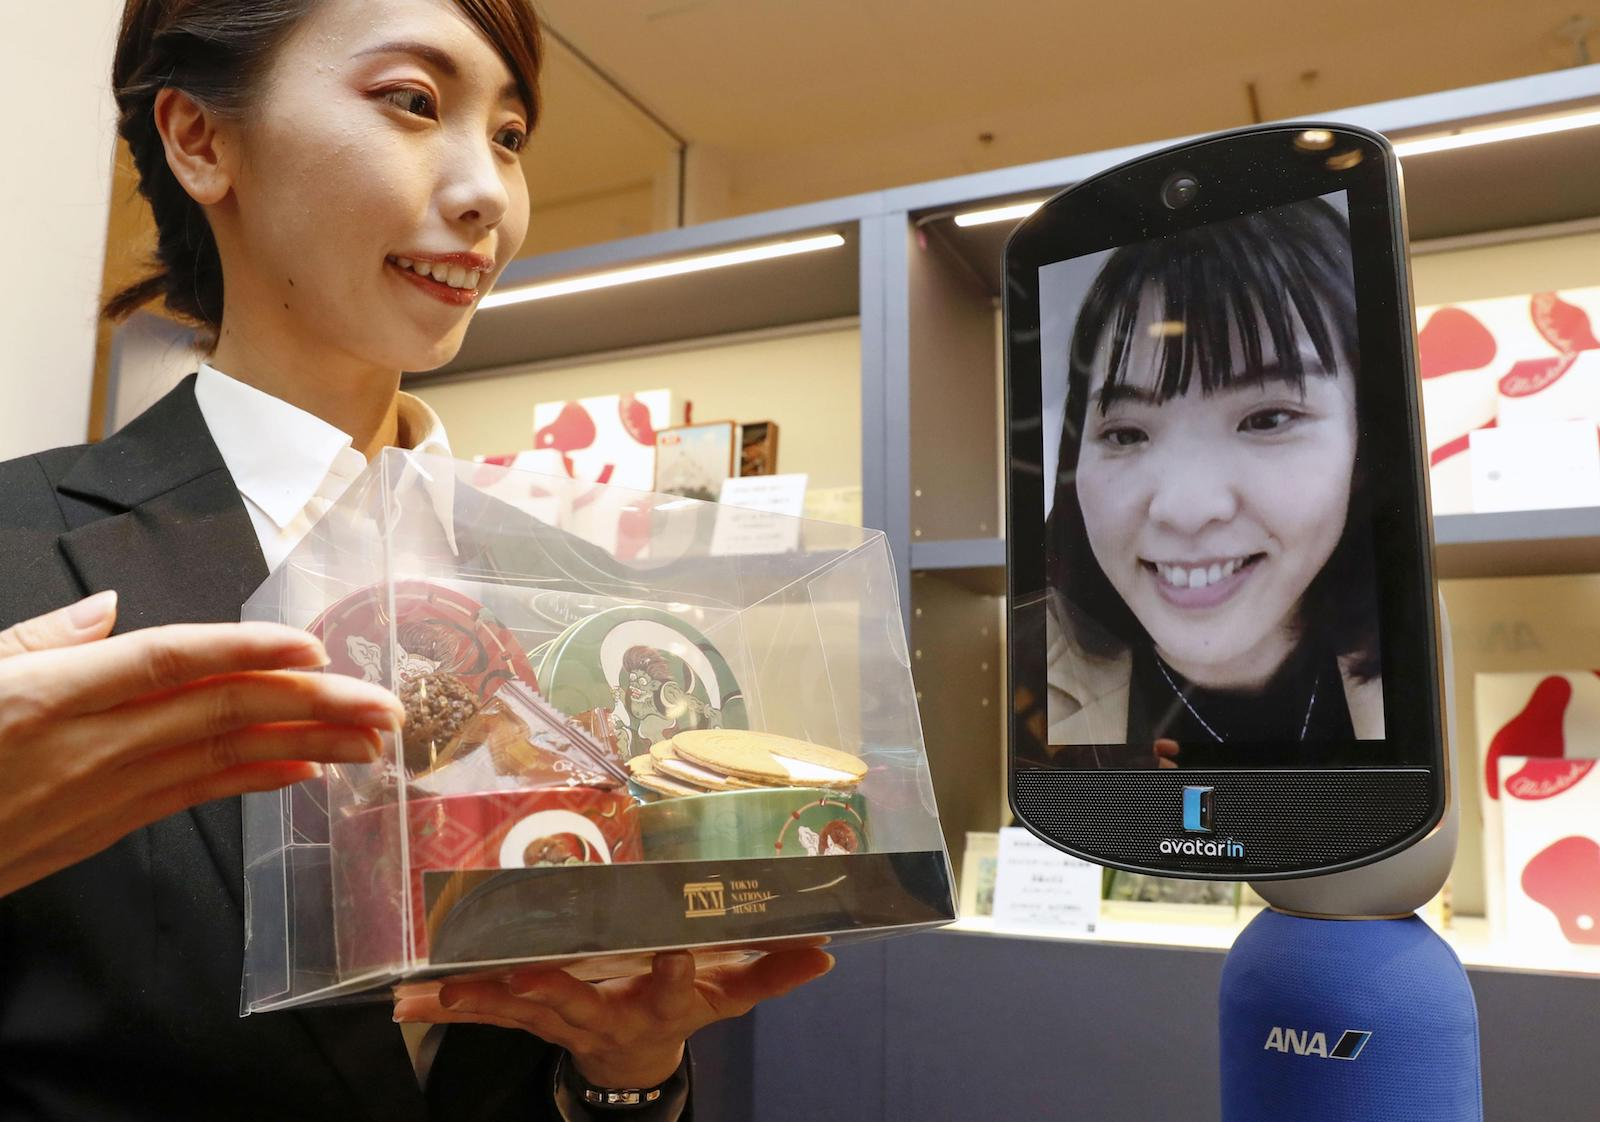 ANA opens world's 1st shop with avatar robot in Tokyo